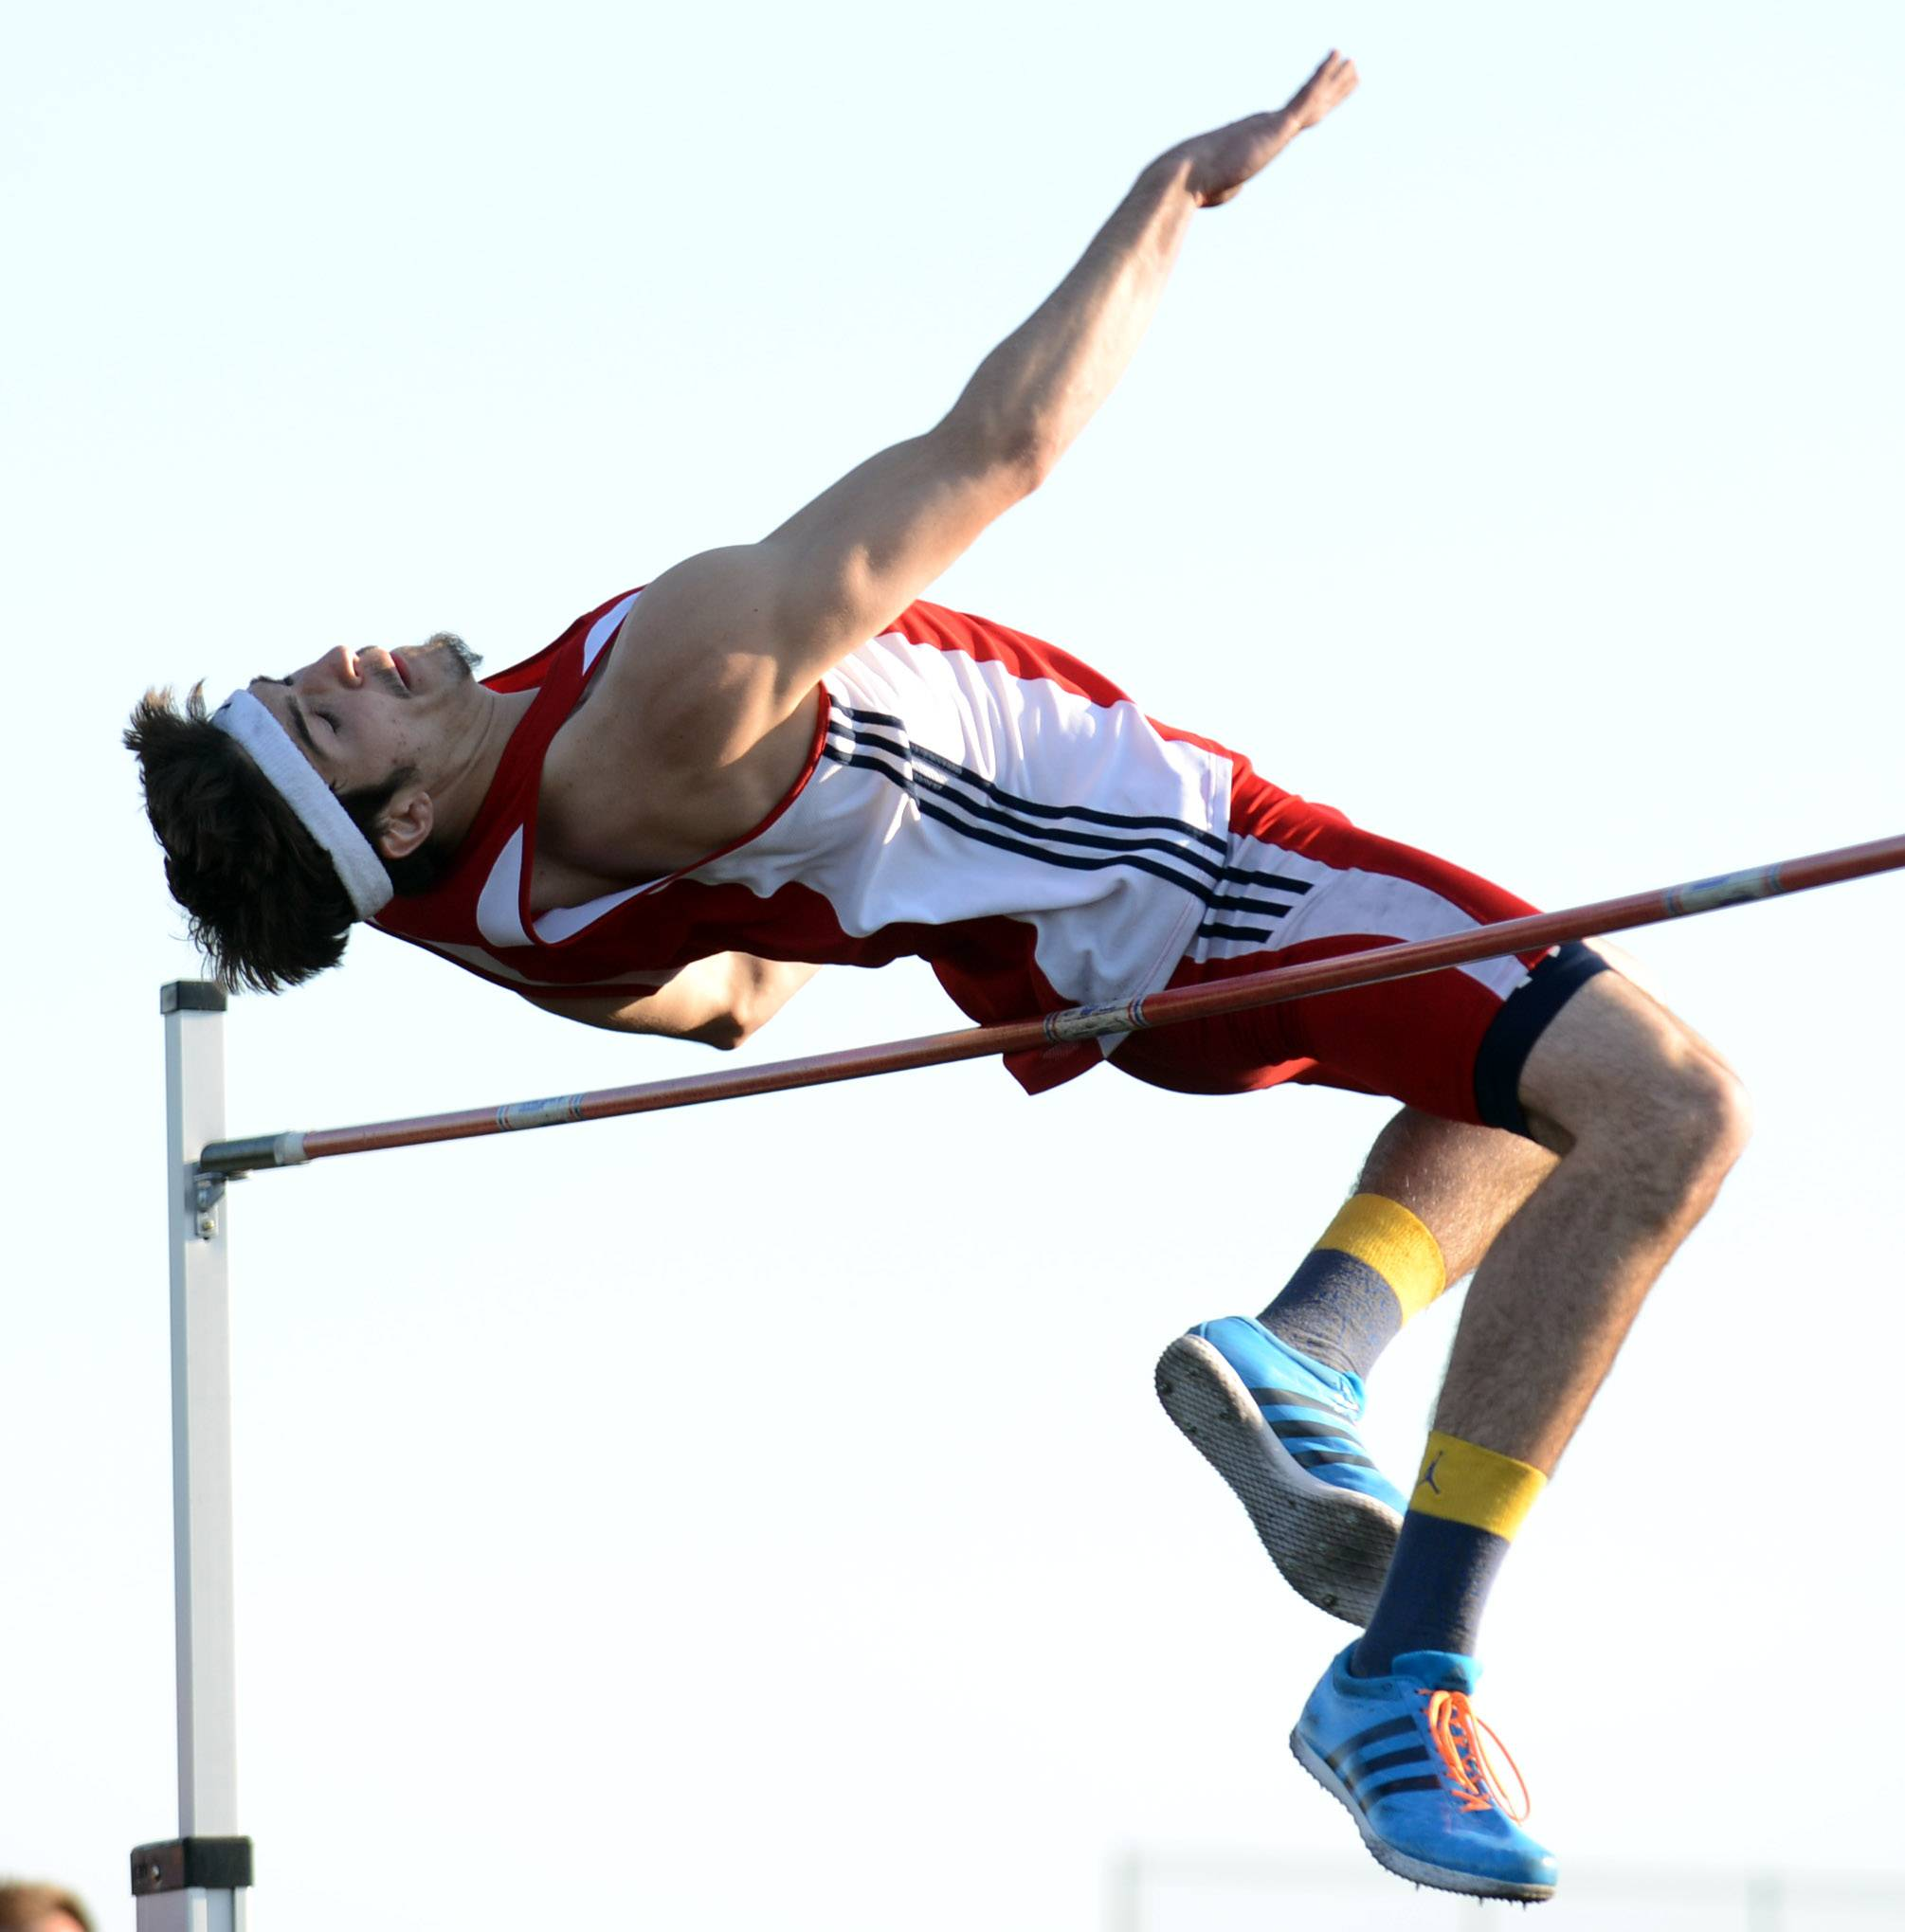 South Elgin's Kyle Kumerow finished 3rd in the high jump at the Kane County boys track meet in Streamwood Friday.